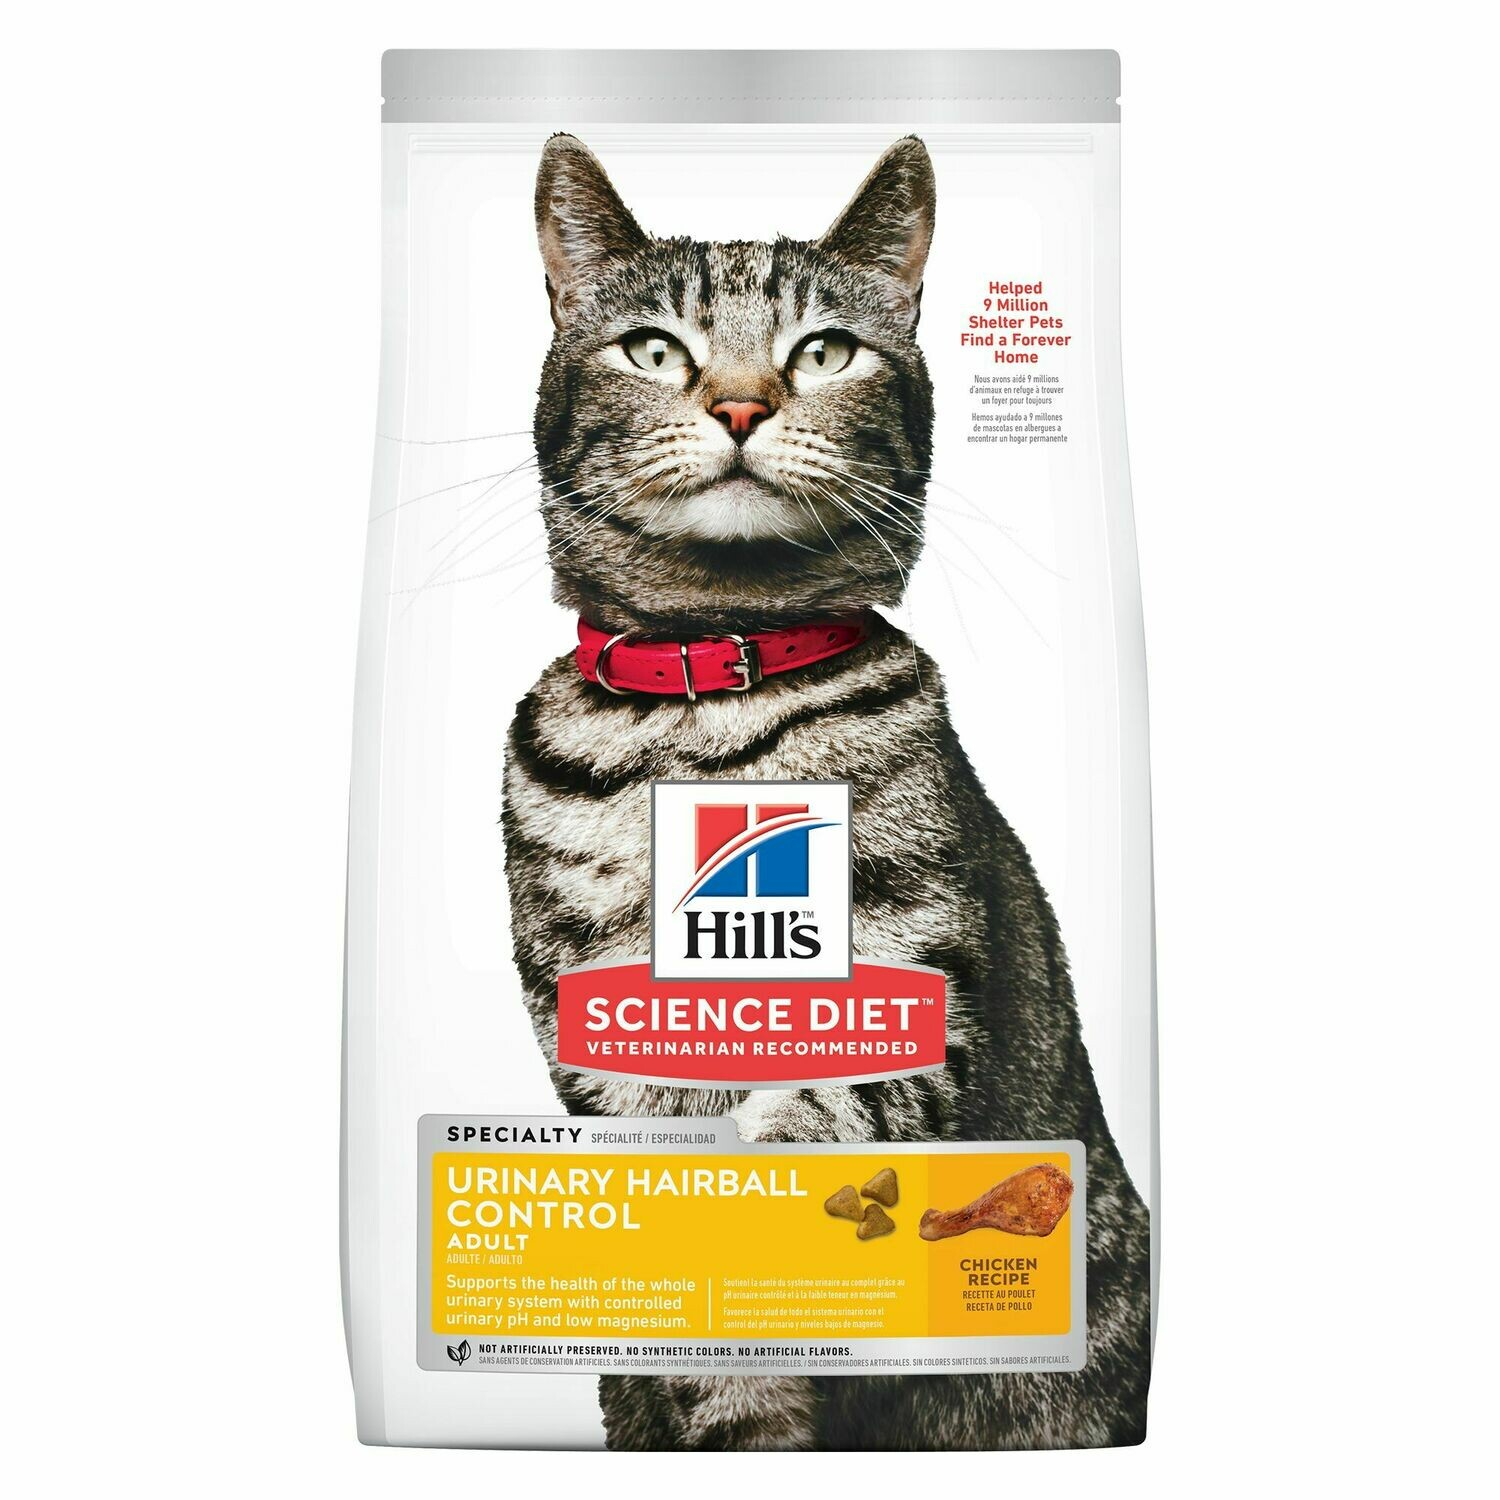 HILL'S SCIENCE DIET CAT - ADULT URINARY HARIBALL CONTROL 7LB